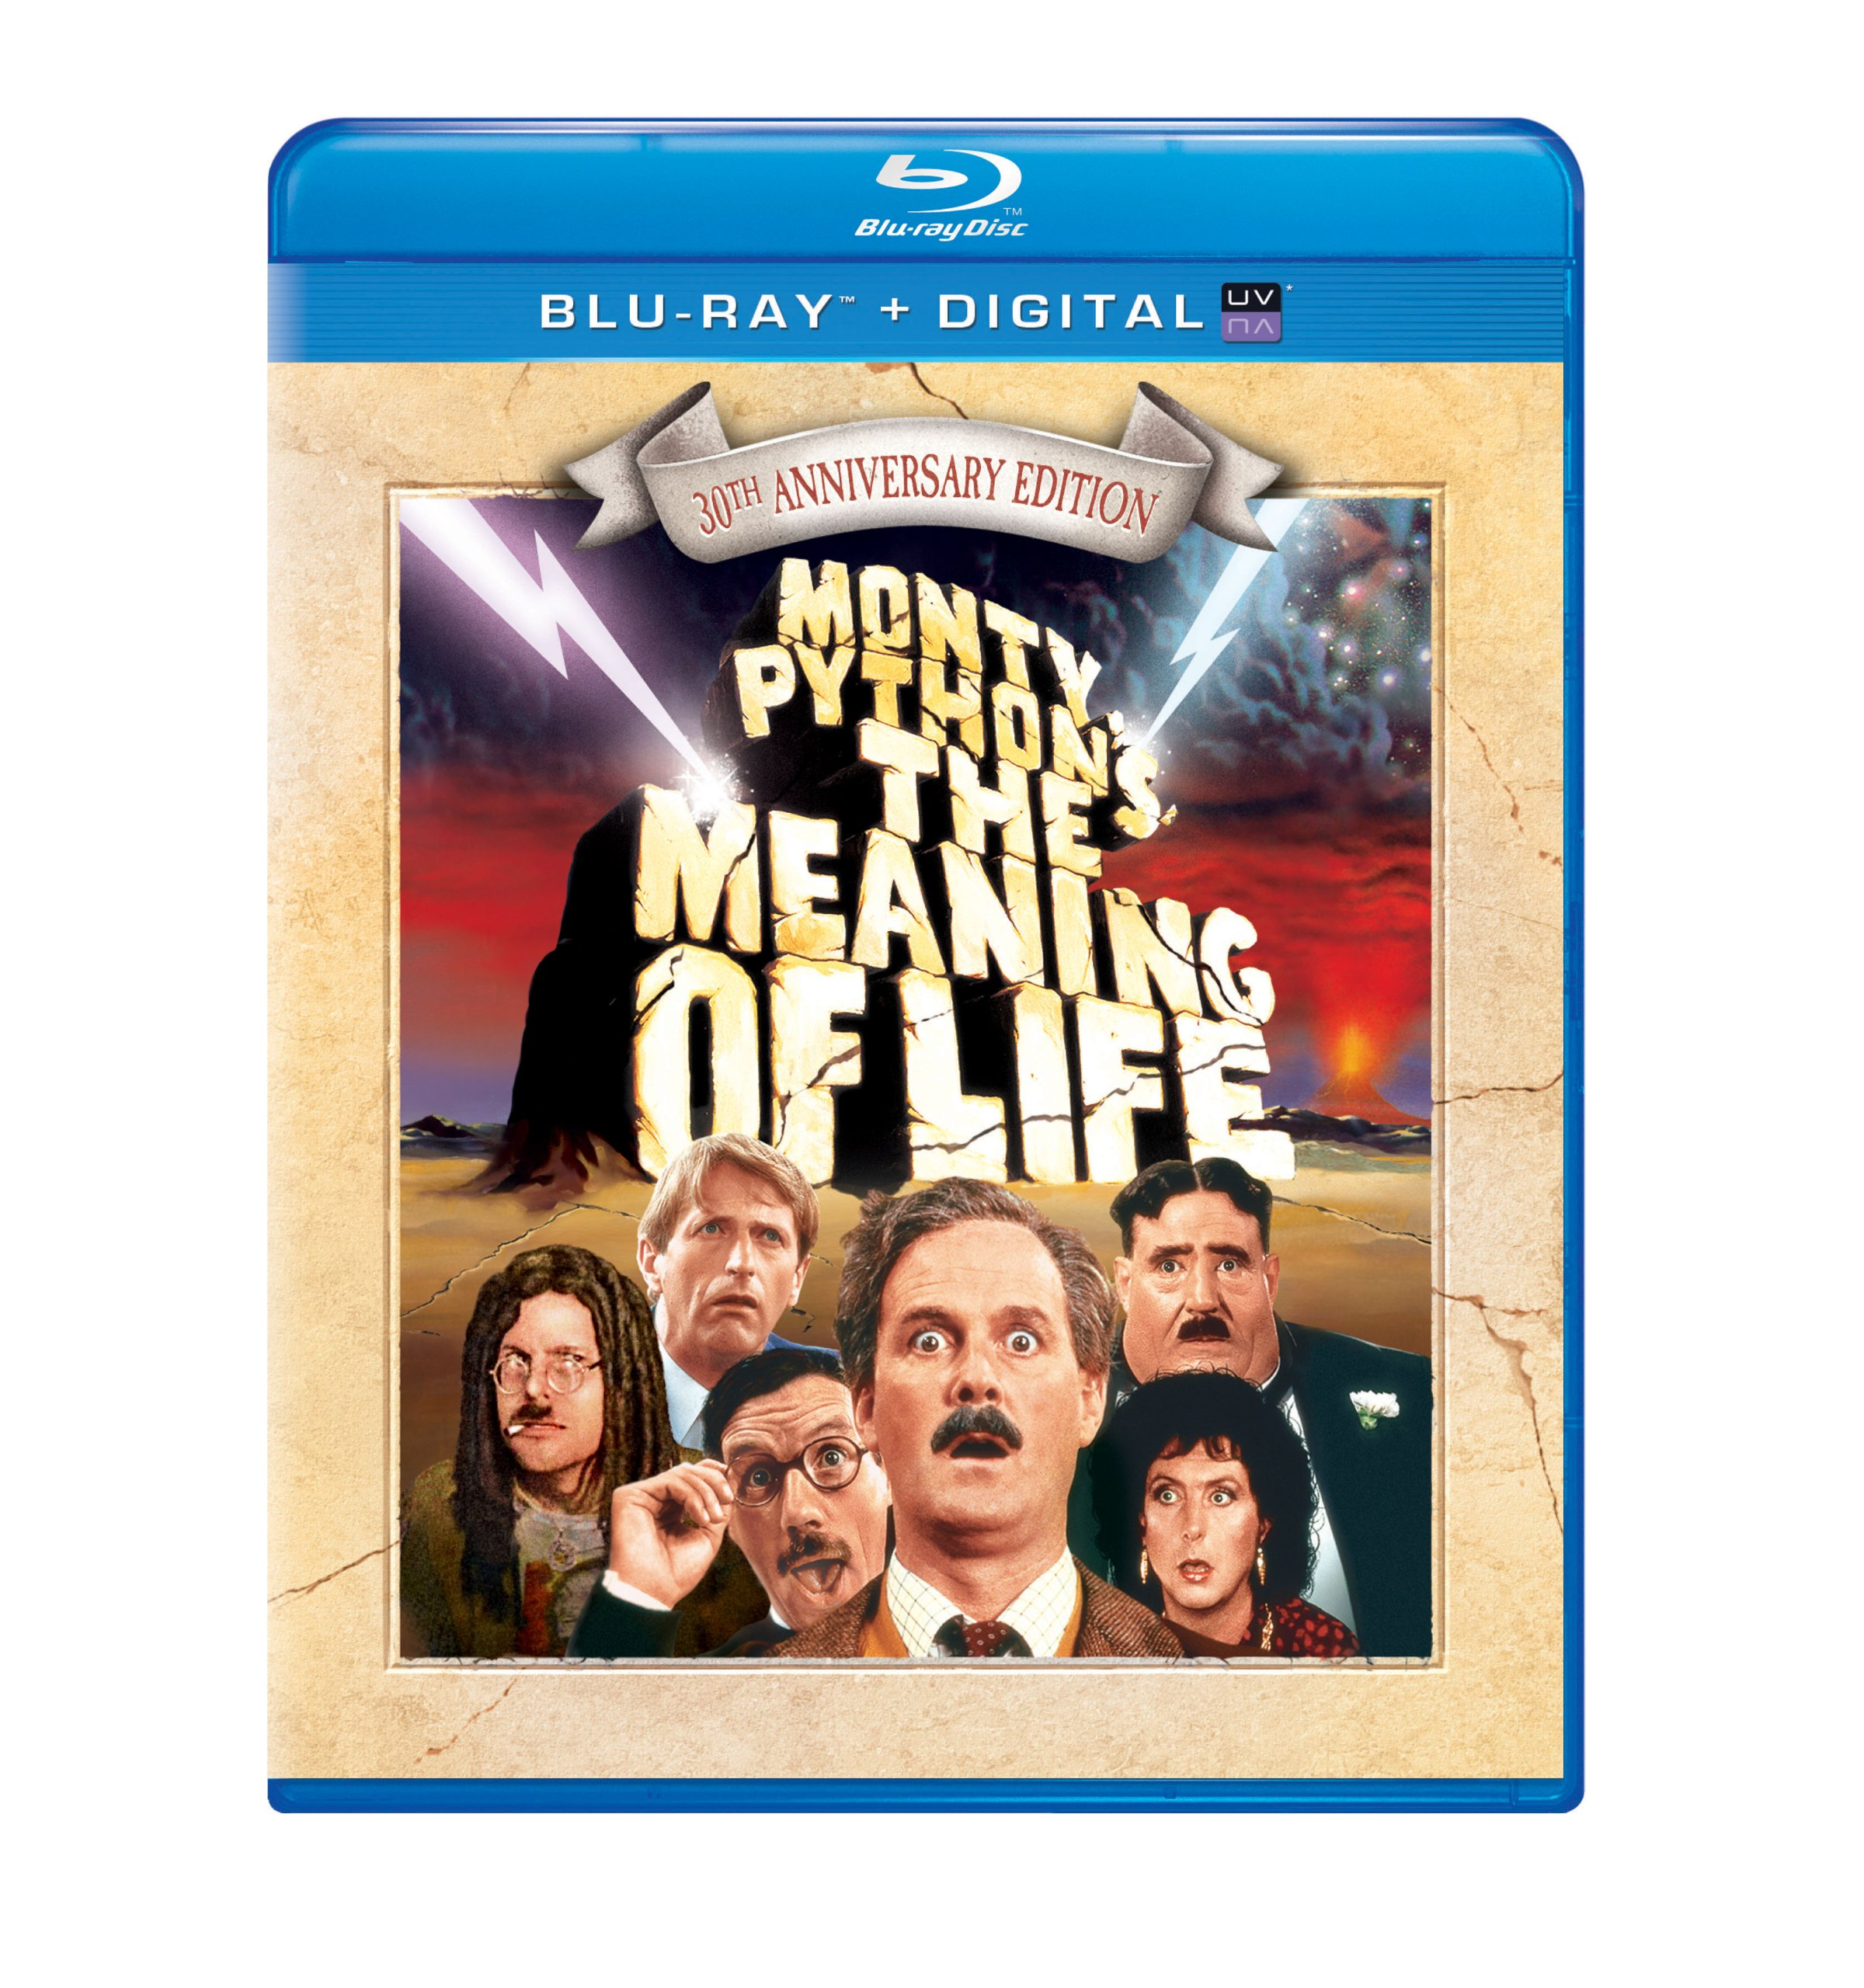 Blu-ray : Monty Python's The Meaning Of Life 30th Anniversary Edition (Anniversary Edition, Ultraviolet Digital Copy, Digital Copy, Snap Case)